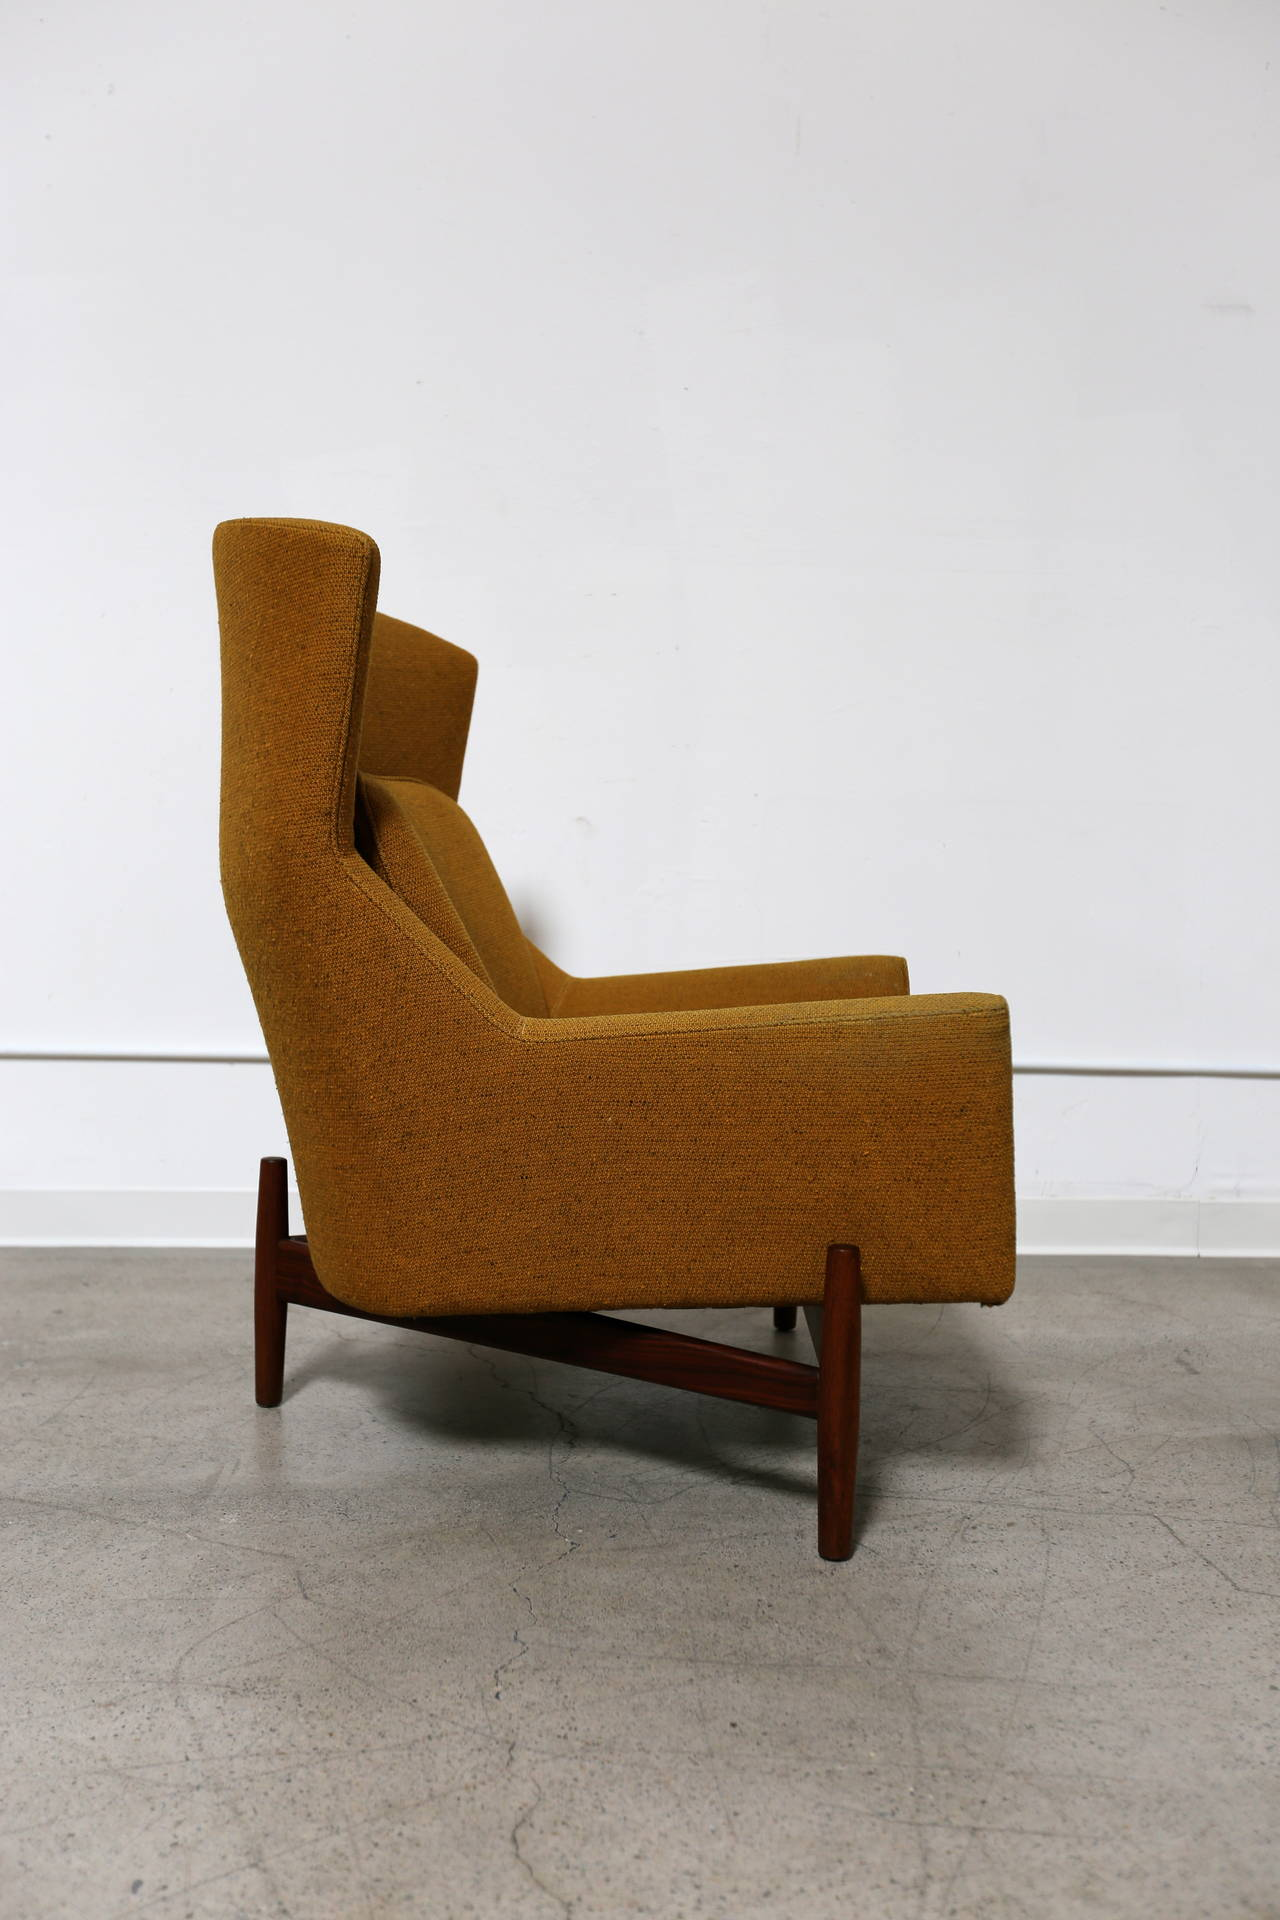 Rare Lounge Chair by Jens Risom at 1stdibs